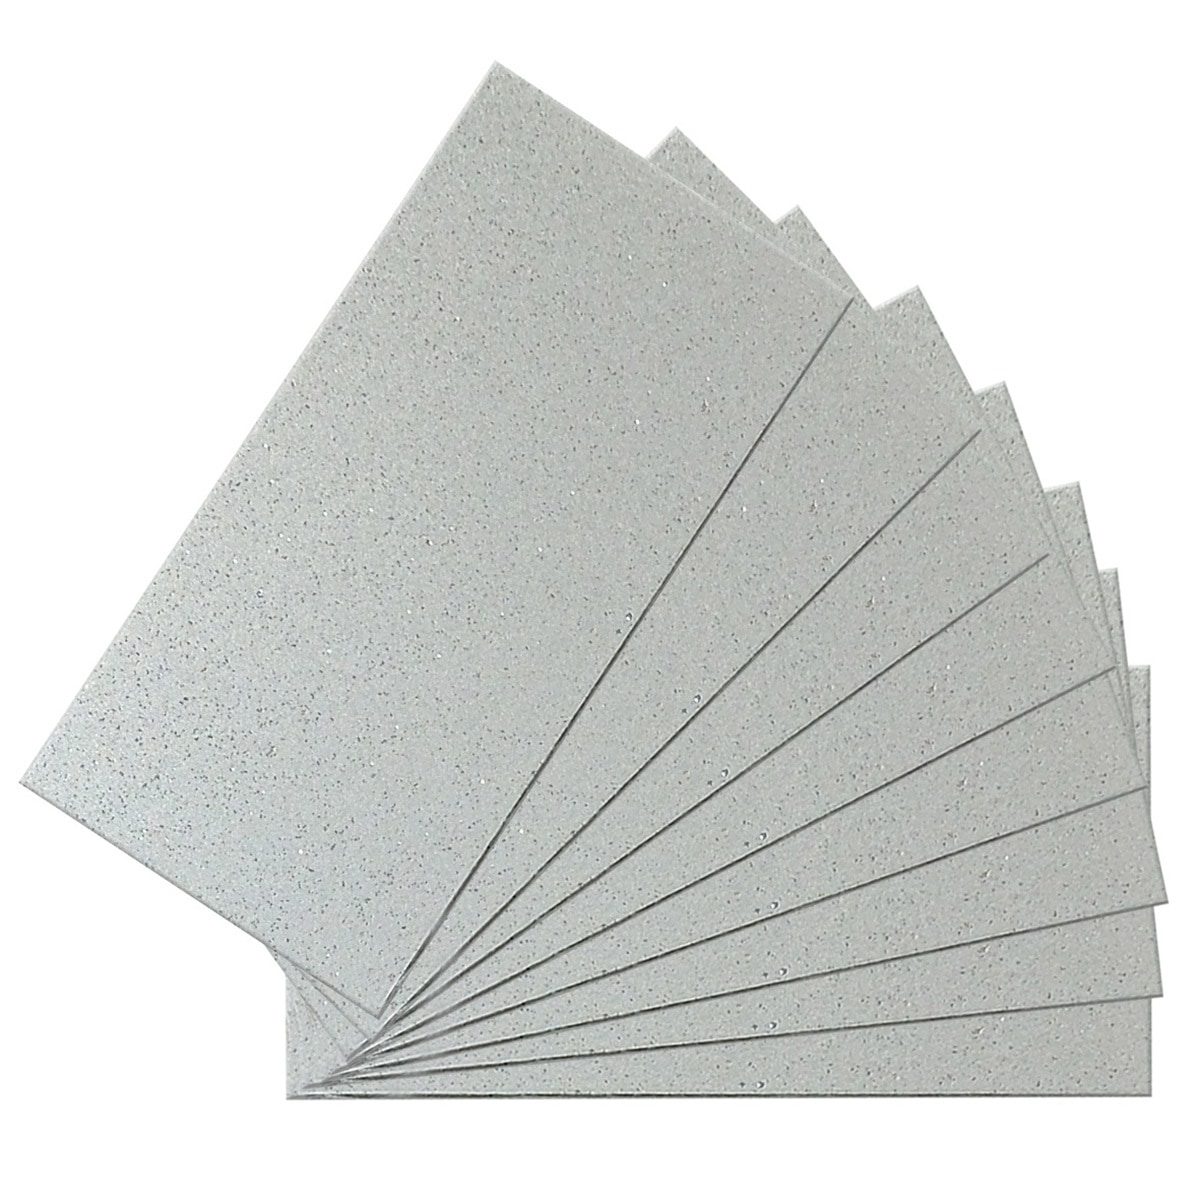 Peel and Stick Glittered Metallic Silver 6 in. x 3 in. Glass Wall Tile (48-Pack) / Glossy SkinnyTile 0